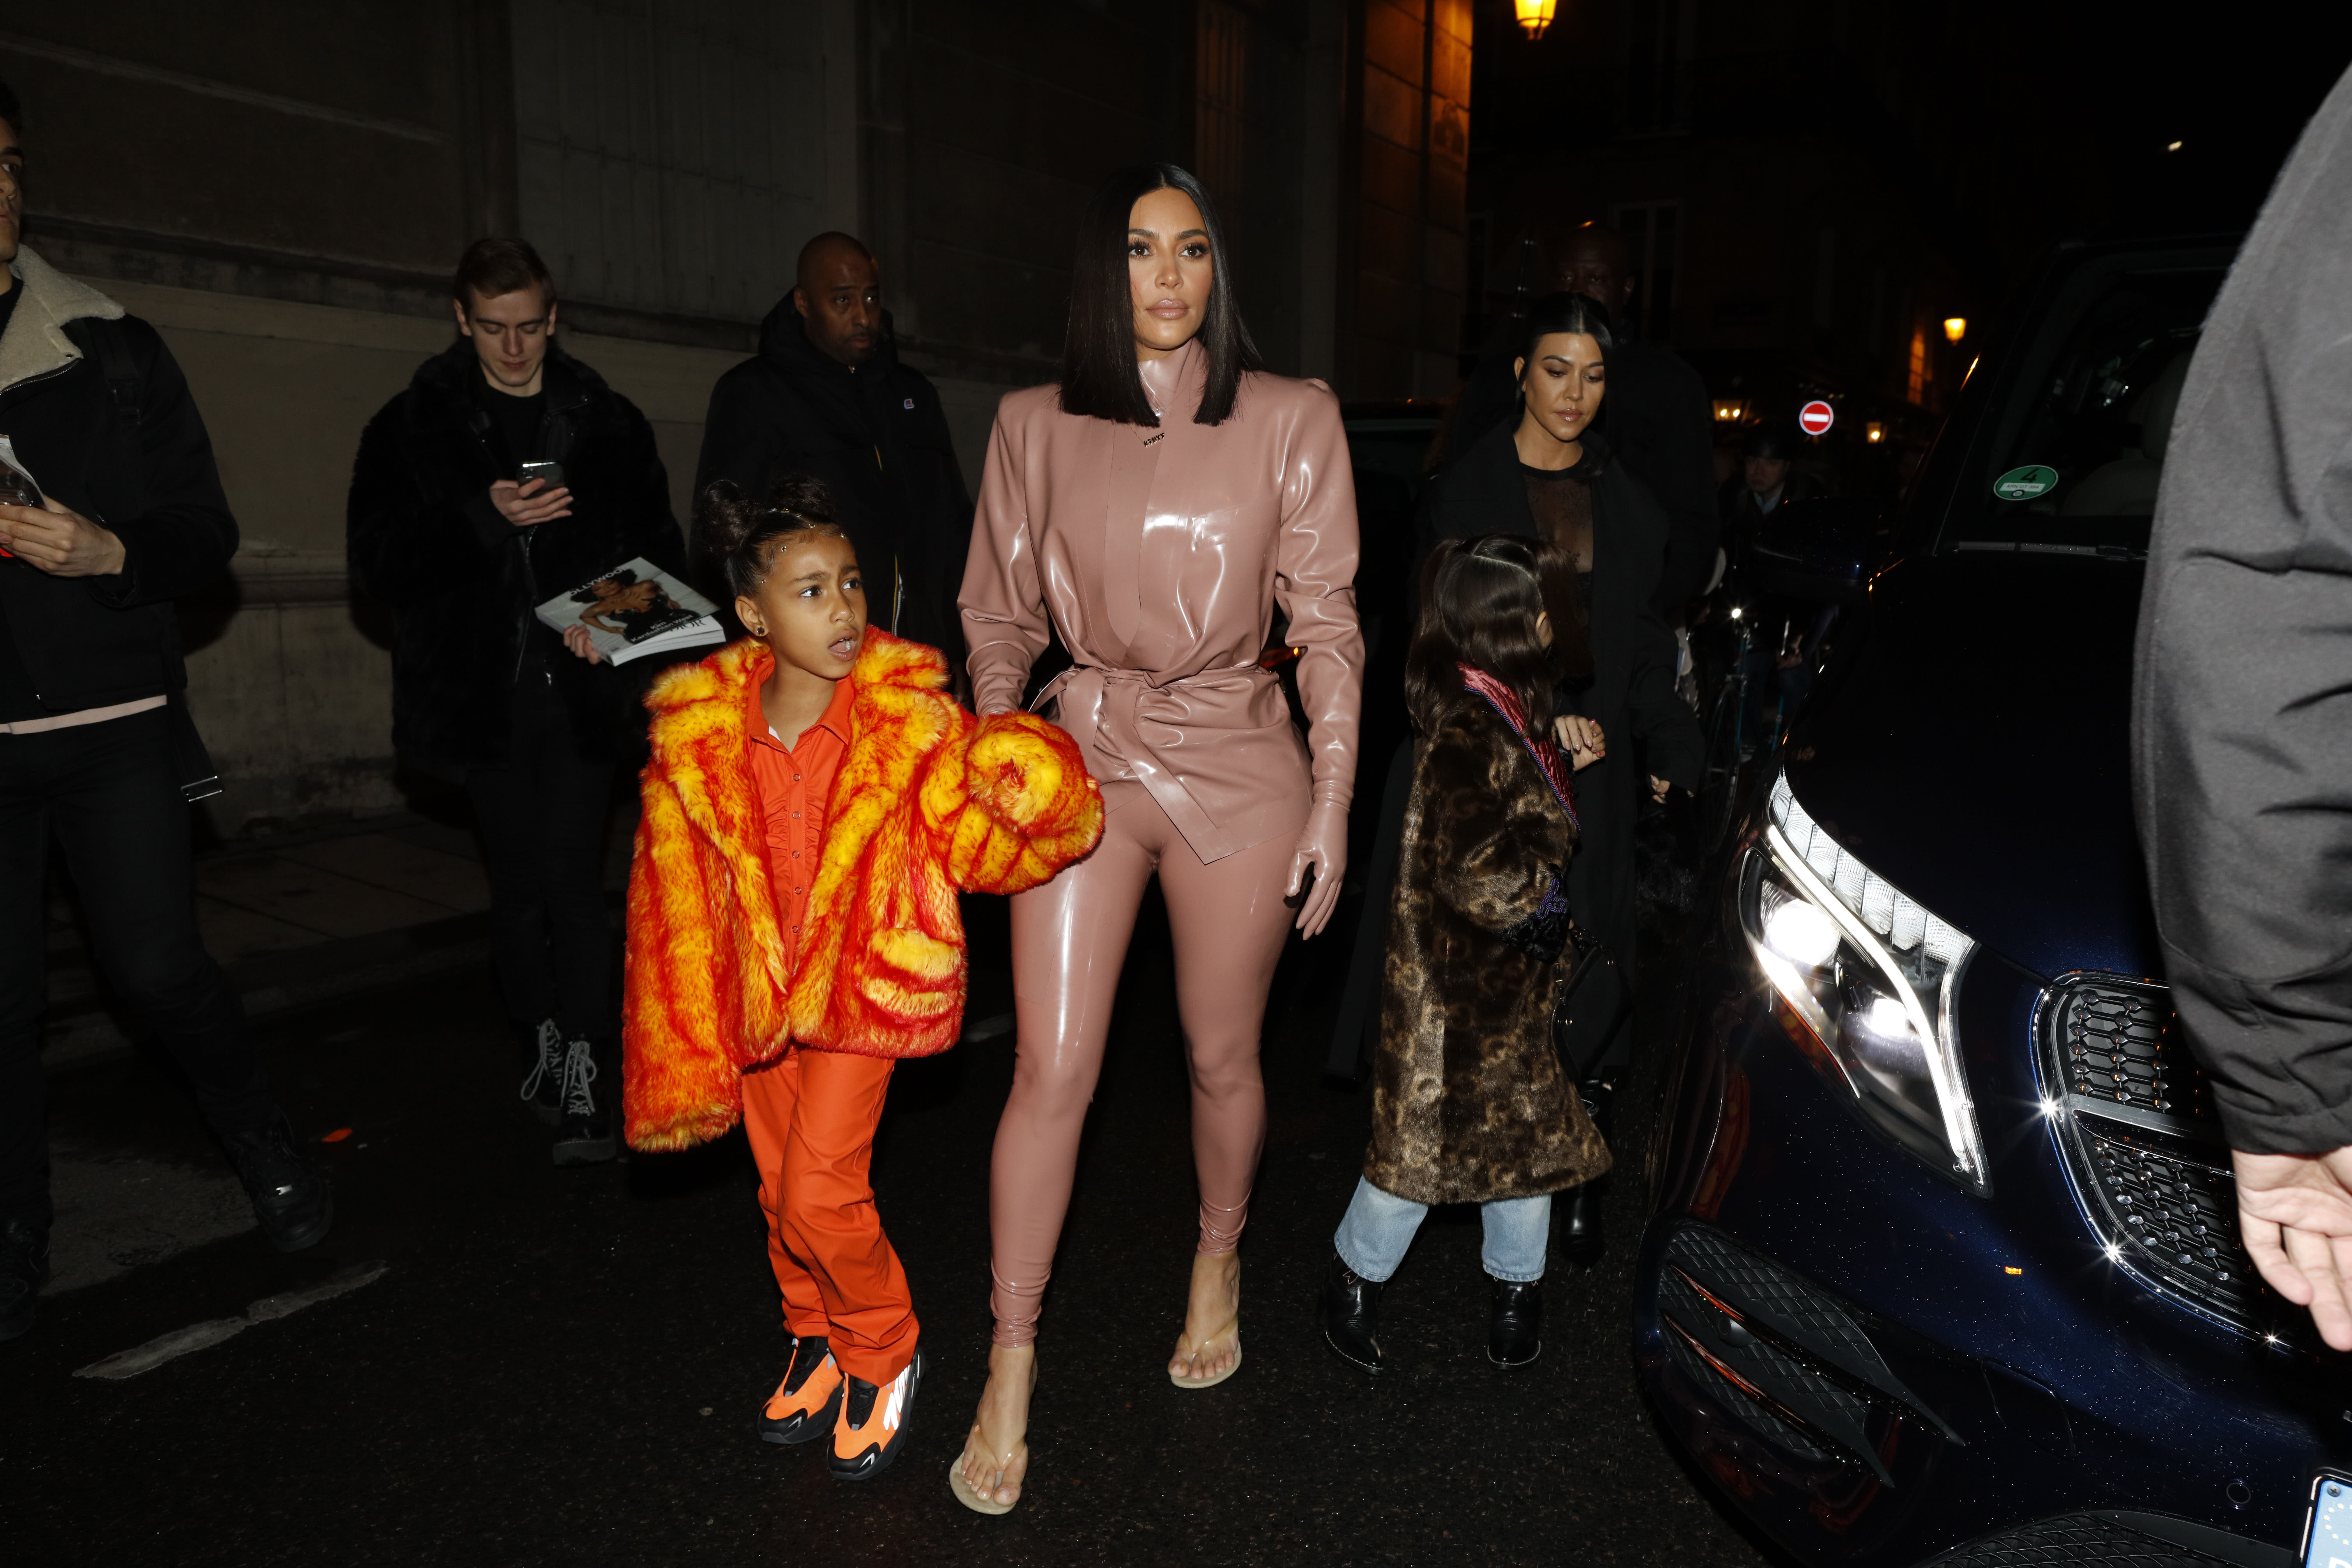 Kourtney Kardashian, daughter Penelope Disick, Kim Kardashian and daughter North West arrive at the Ferdi restaurant on March 01, 2020 in Paris, France. (Photo by Mehdi Taamallah/NurPhoto via Getty Images)